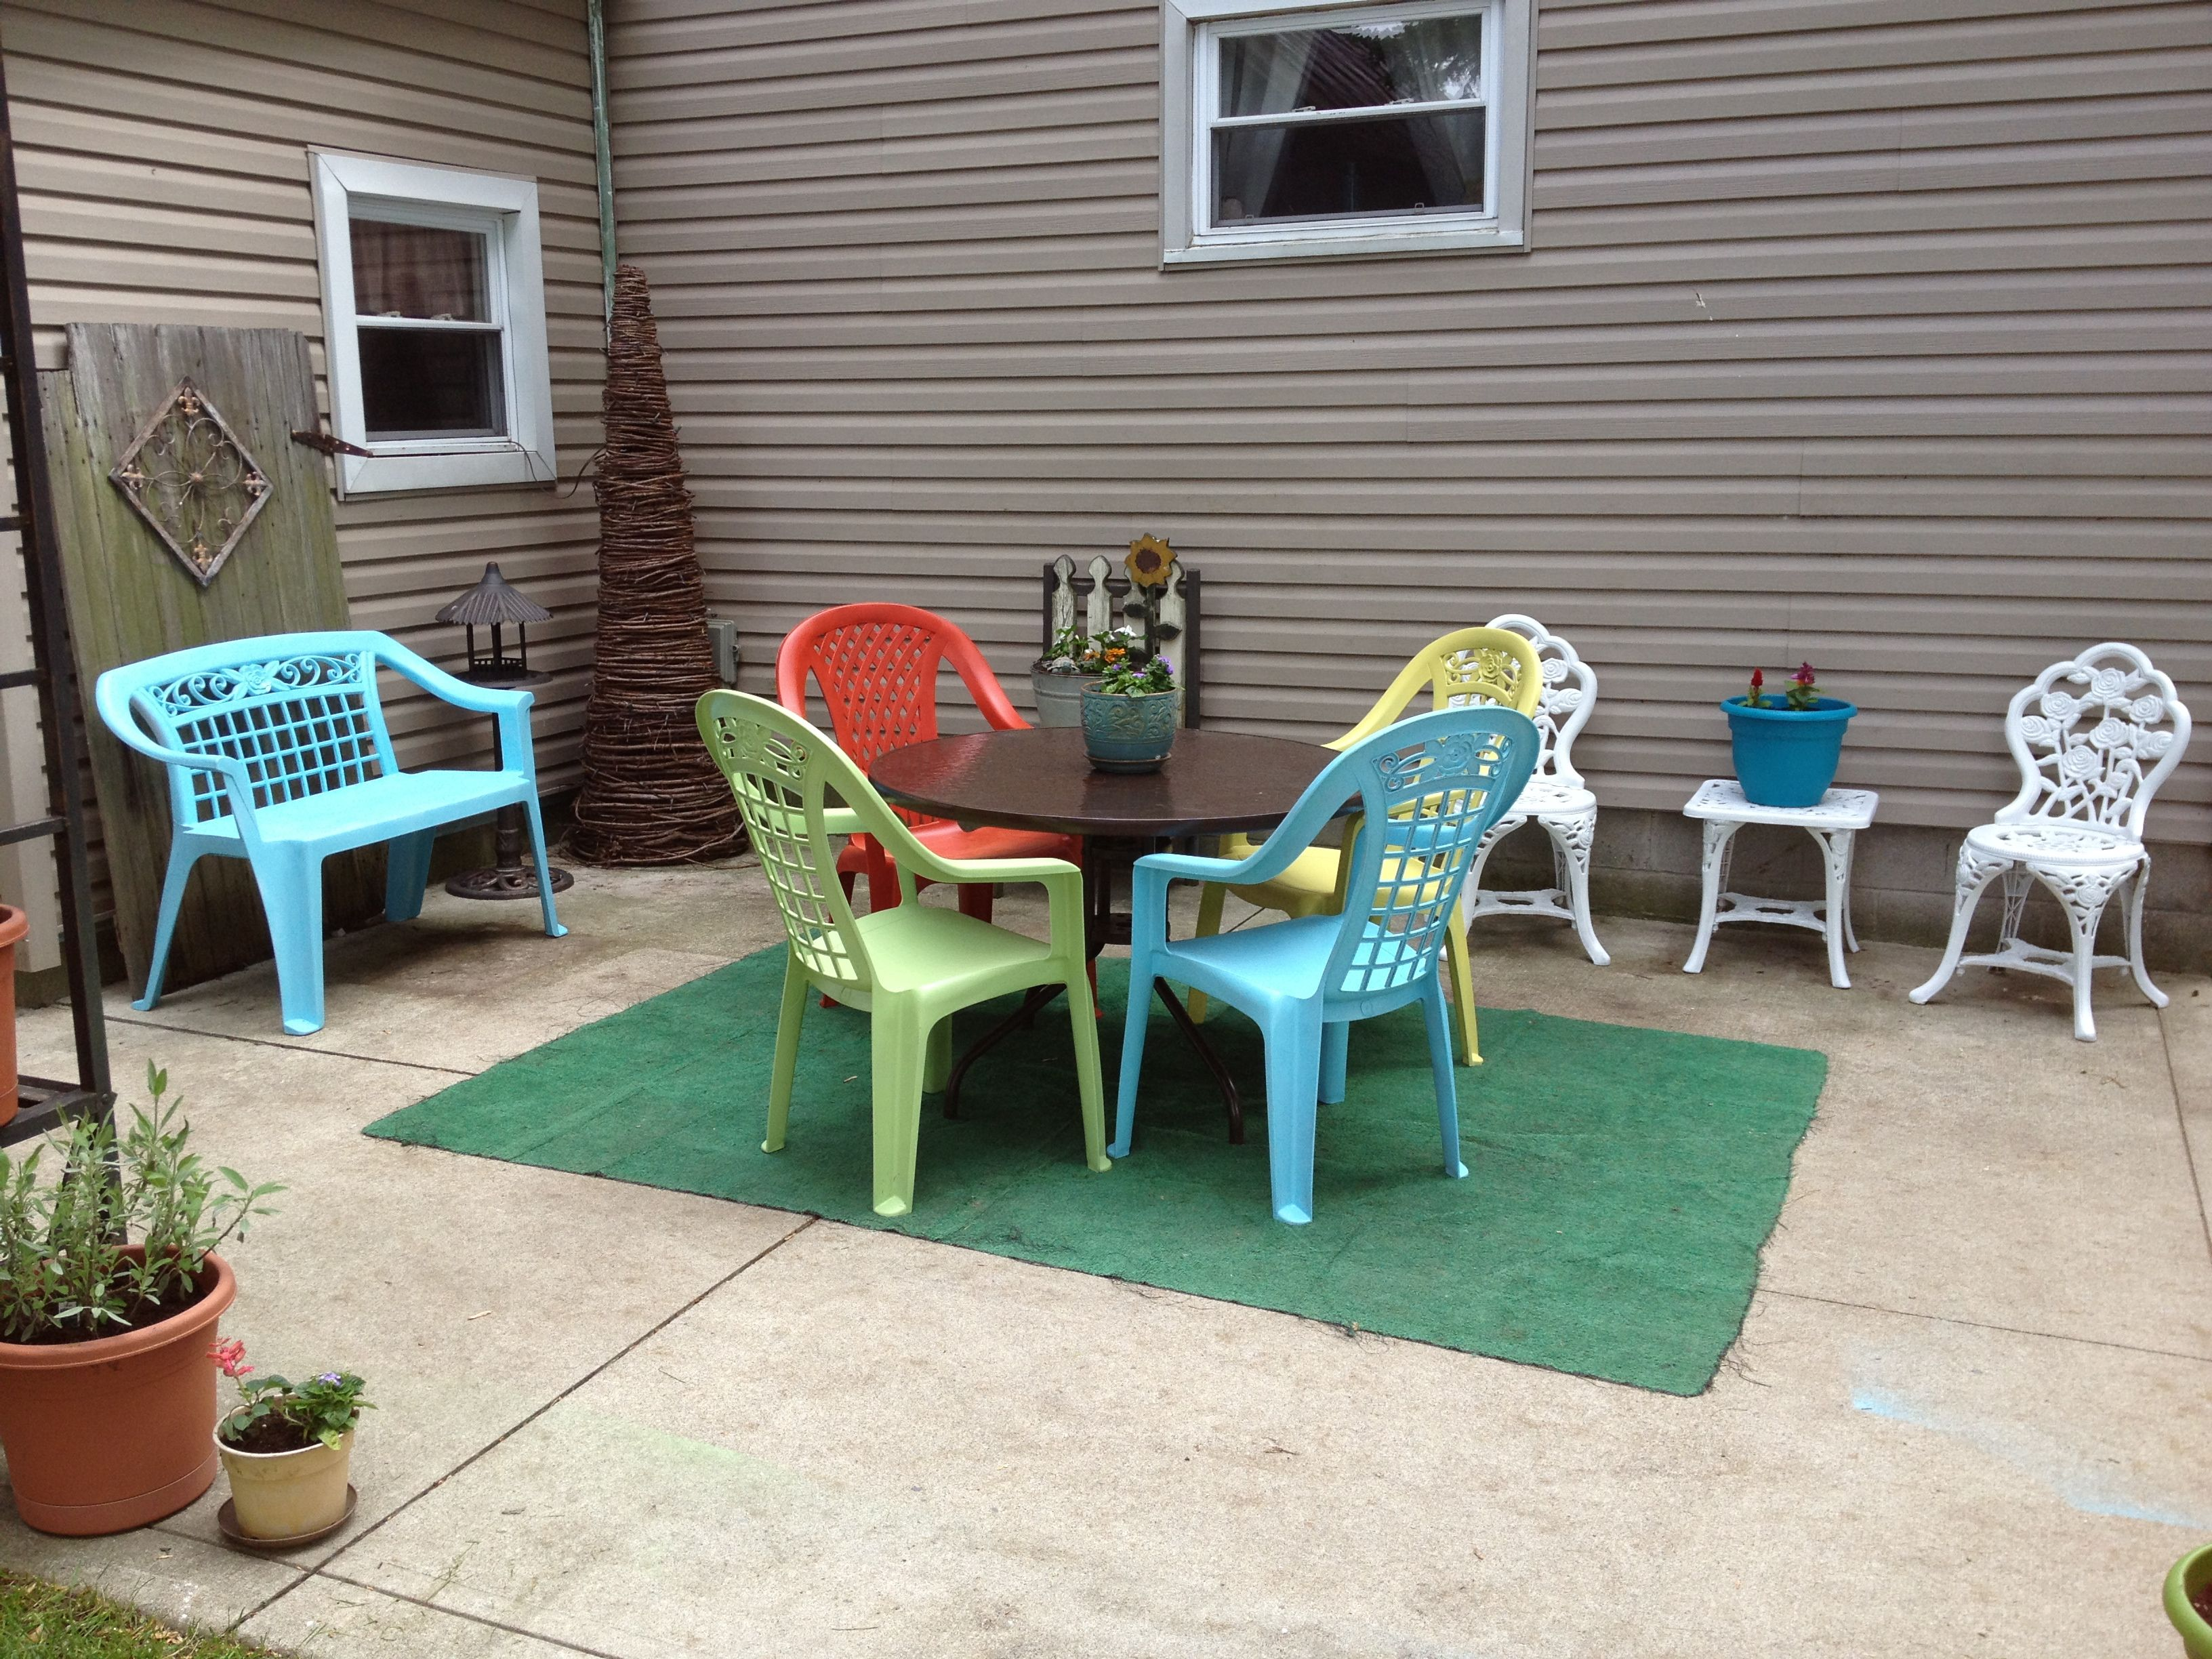 Bring New Life To Old Plastic Patio Furniture With Spray Paint For Plastic!